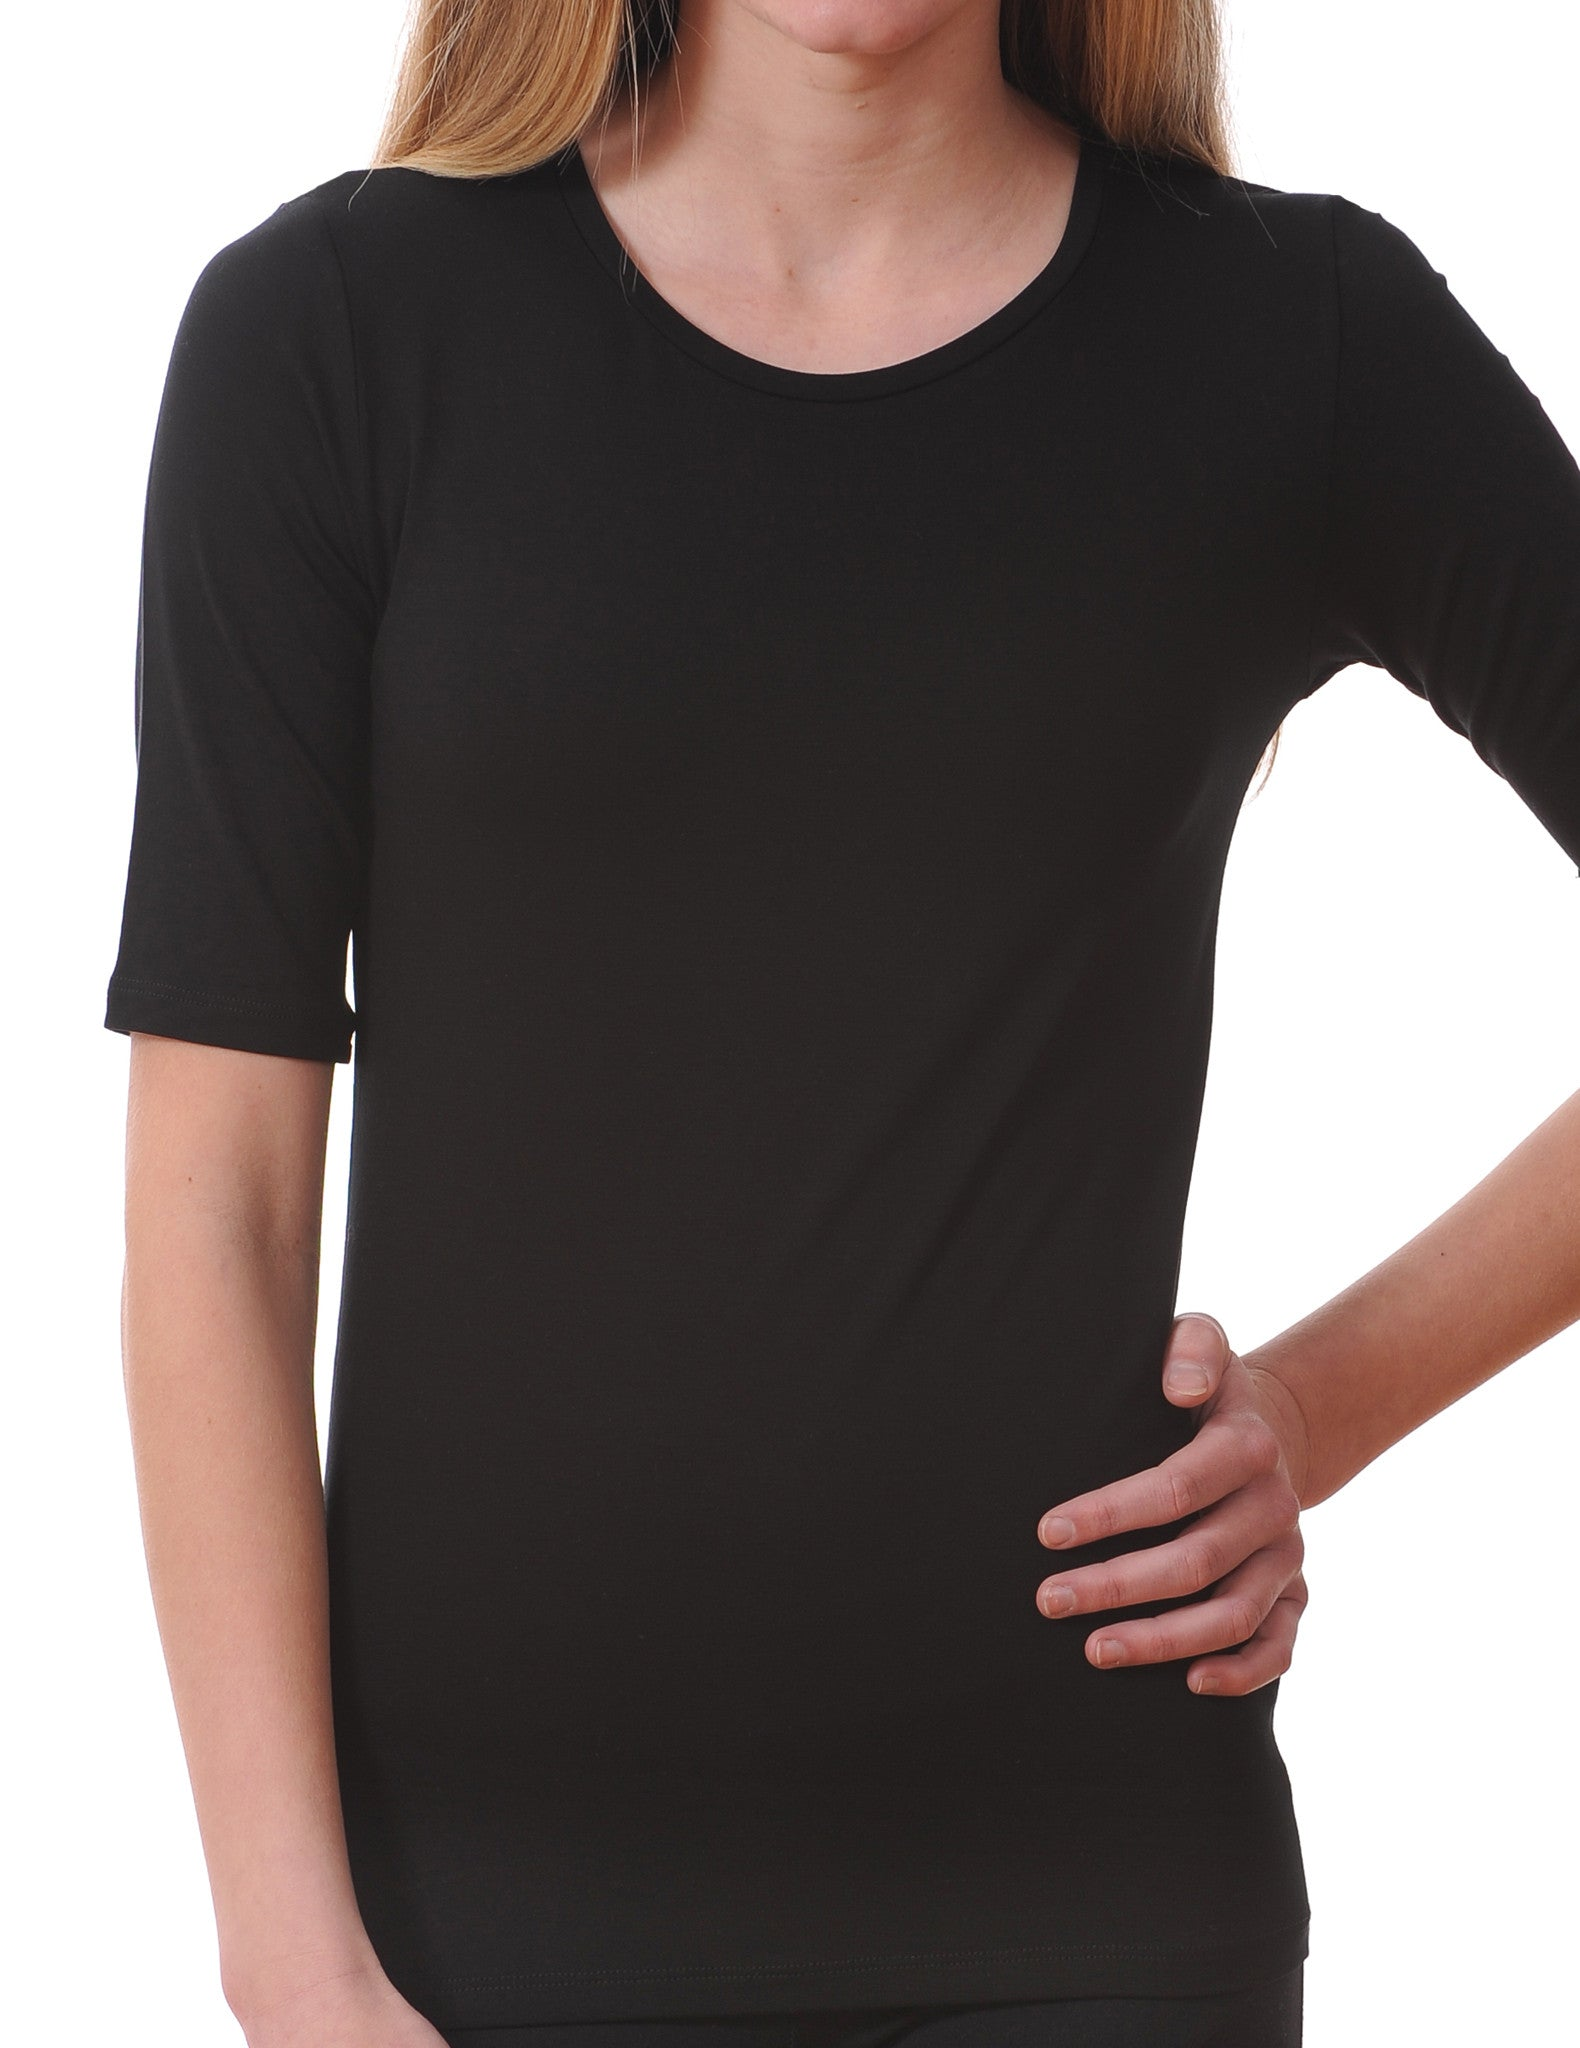 Majestic Elbow Sleeve Crewneck Tee in Black